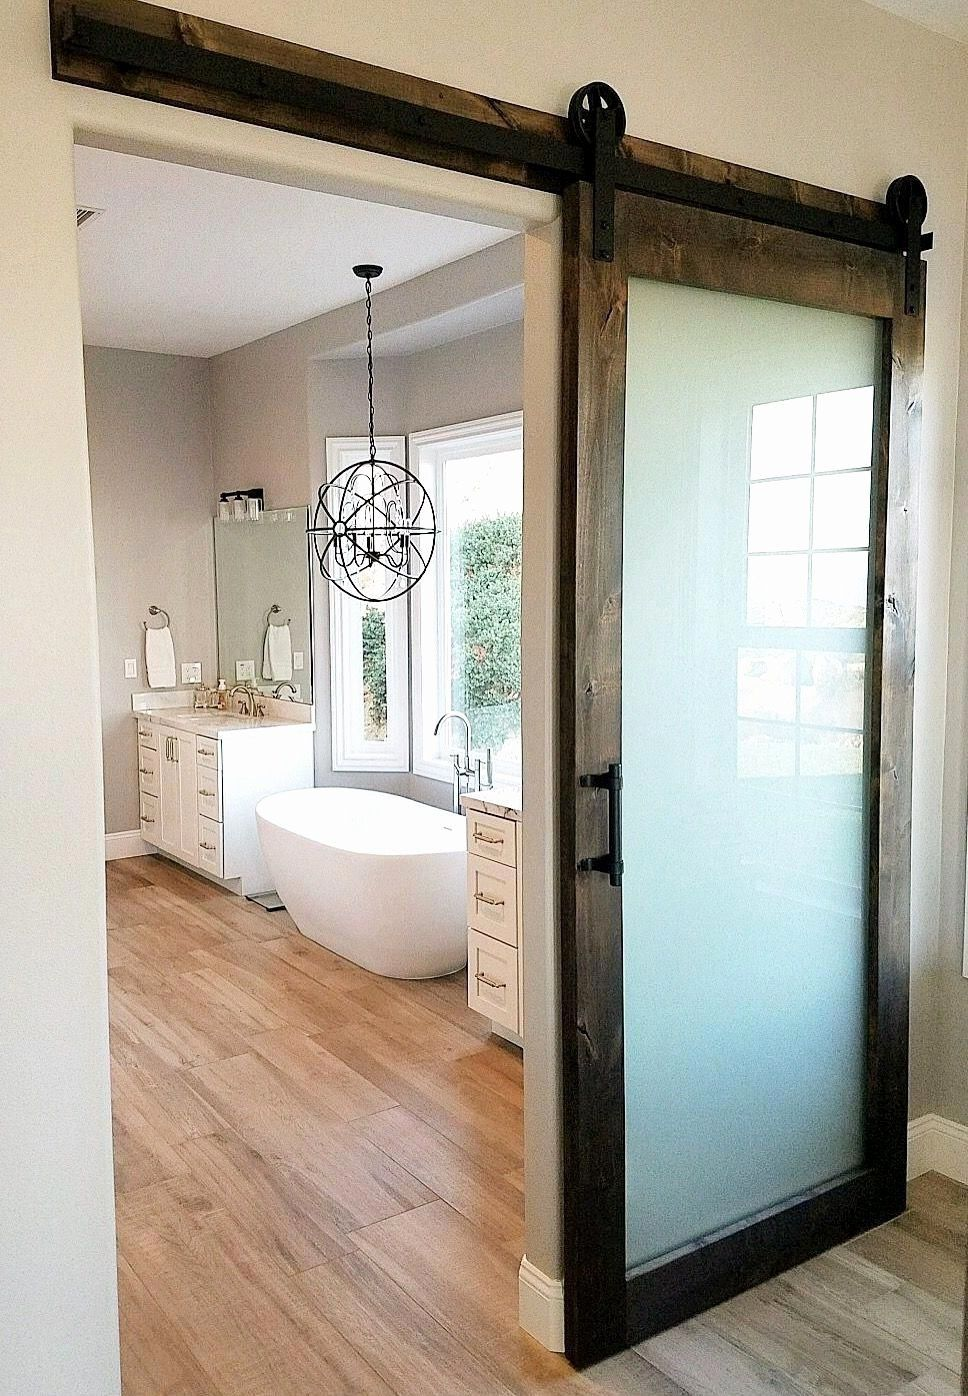 Bedroom Barn Door Hardware Best Of Frosted Glass Knotty Alder Barn Door With Hardware For A Bathroom Barn Door Sliding Bathroom Doors Sliding Door Design